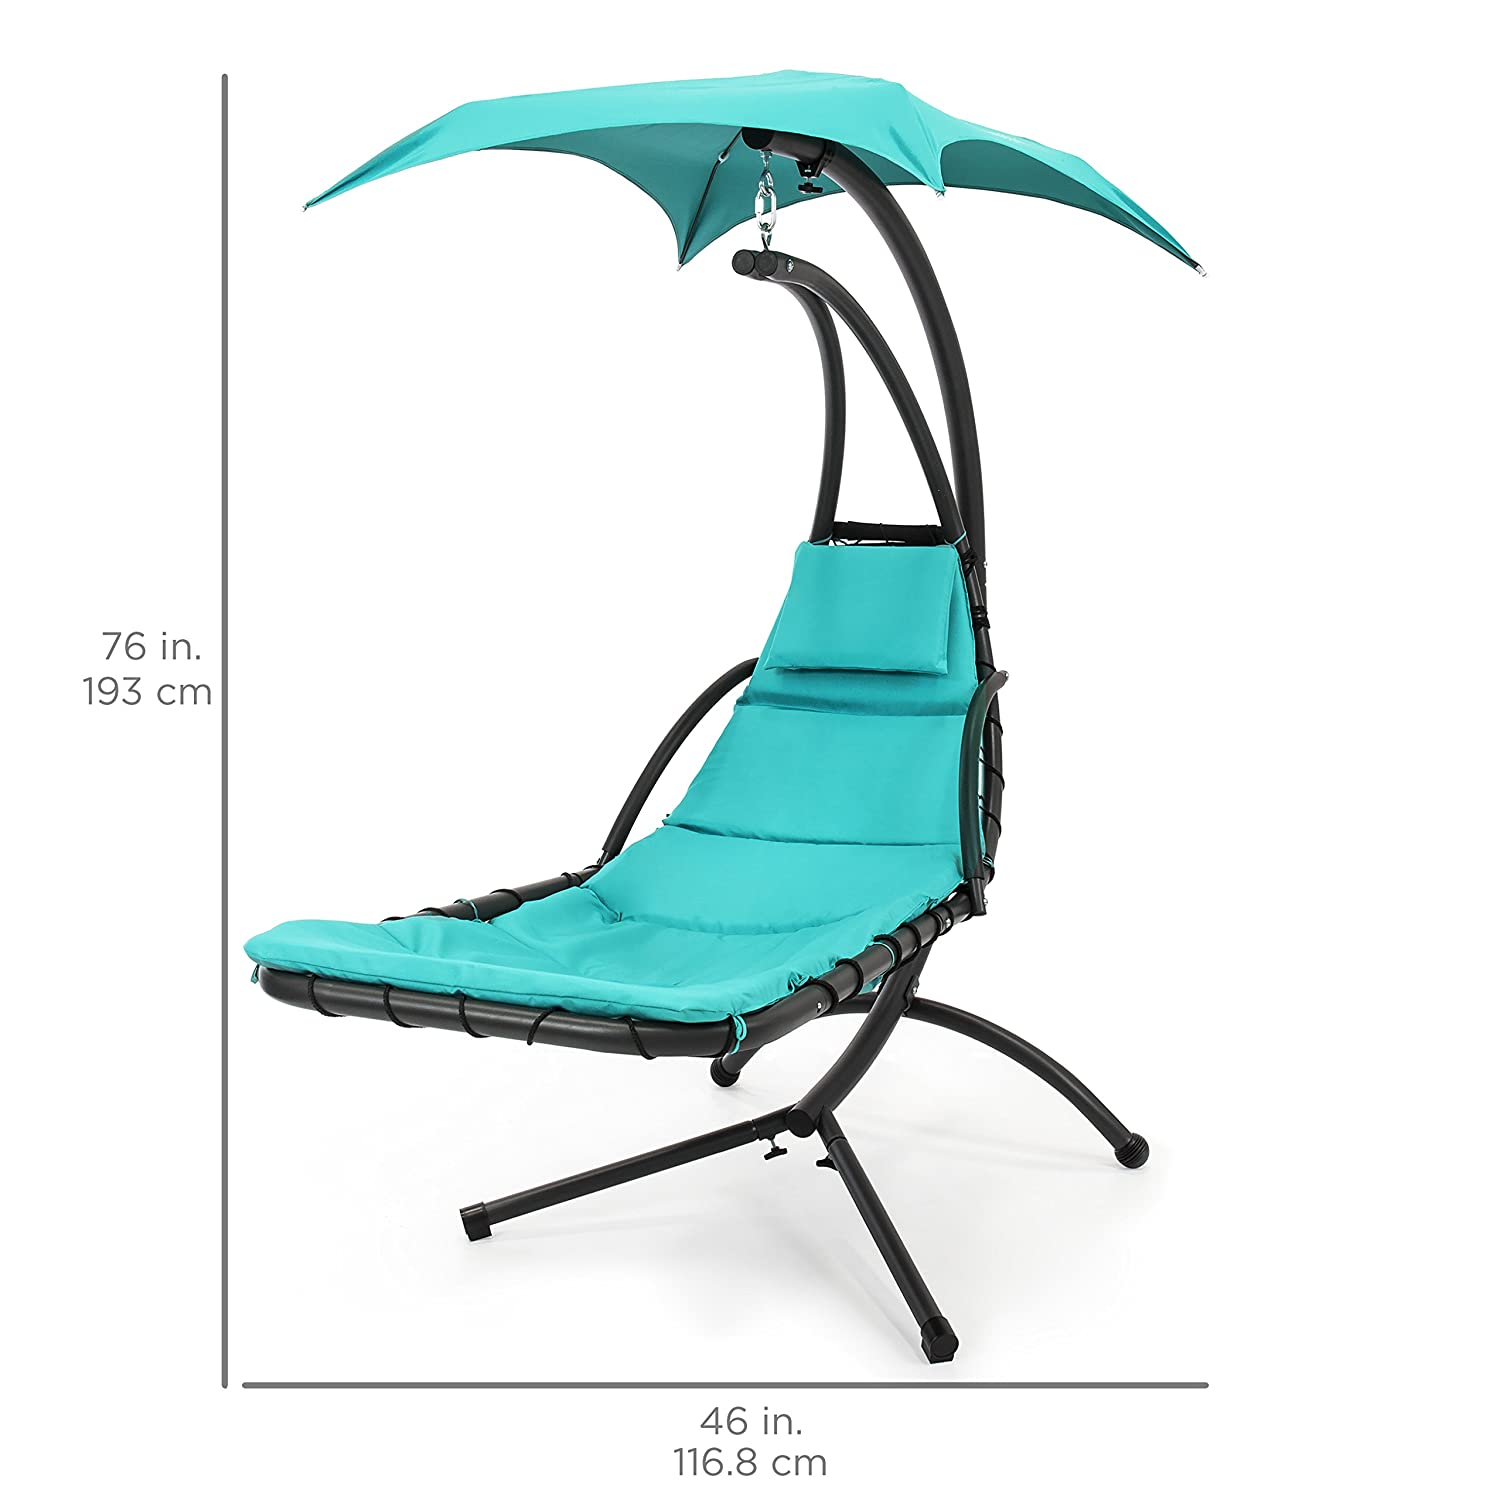 amazon com best choice products hanging chaise lounger chair arc